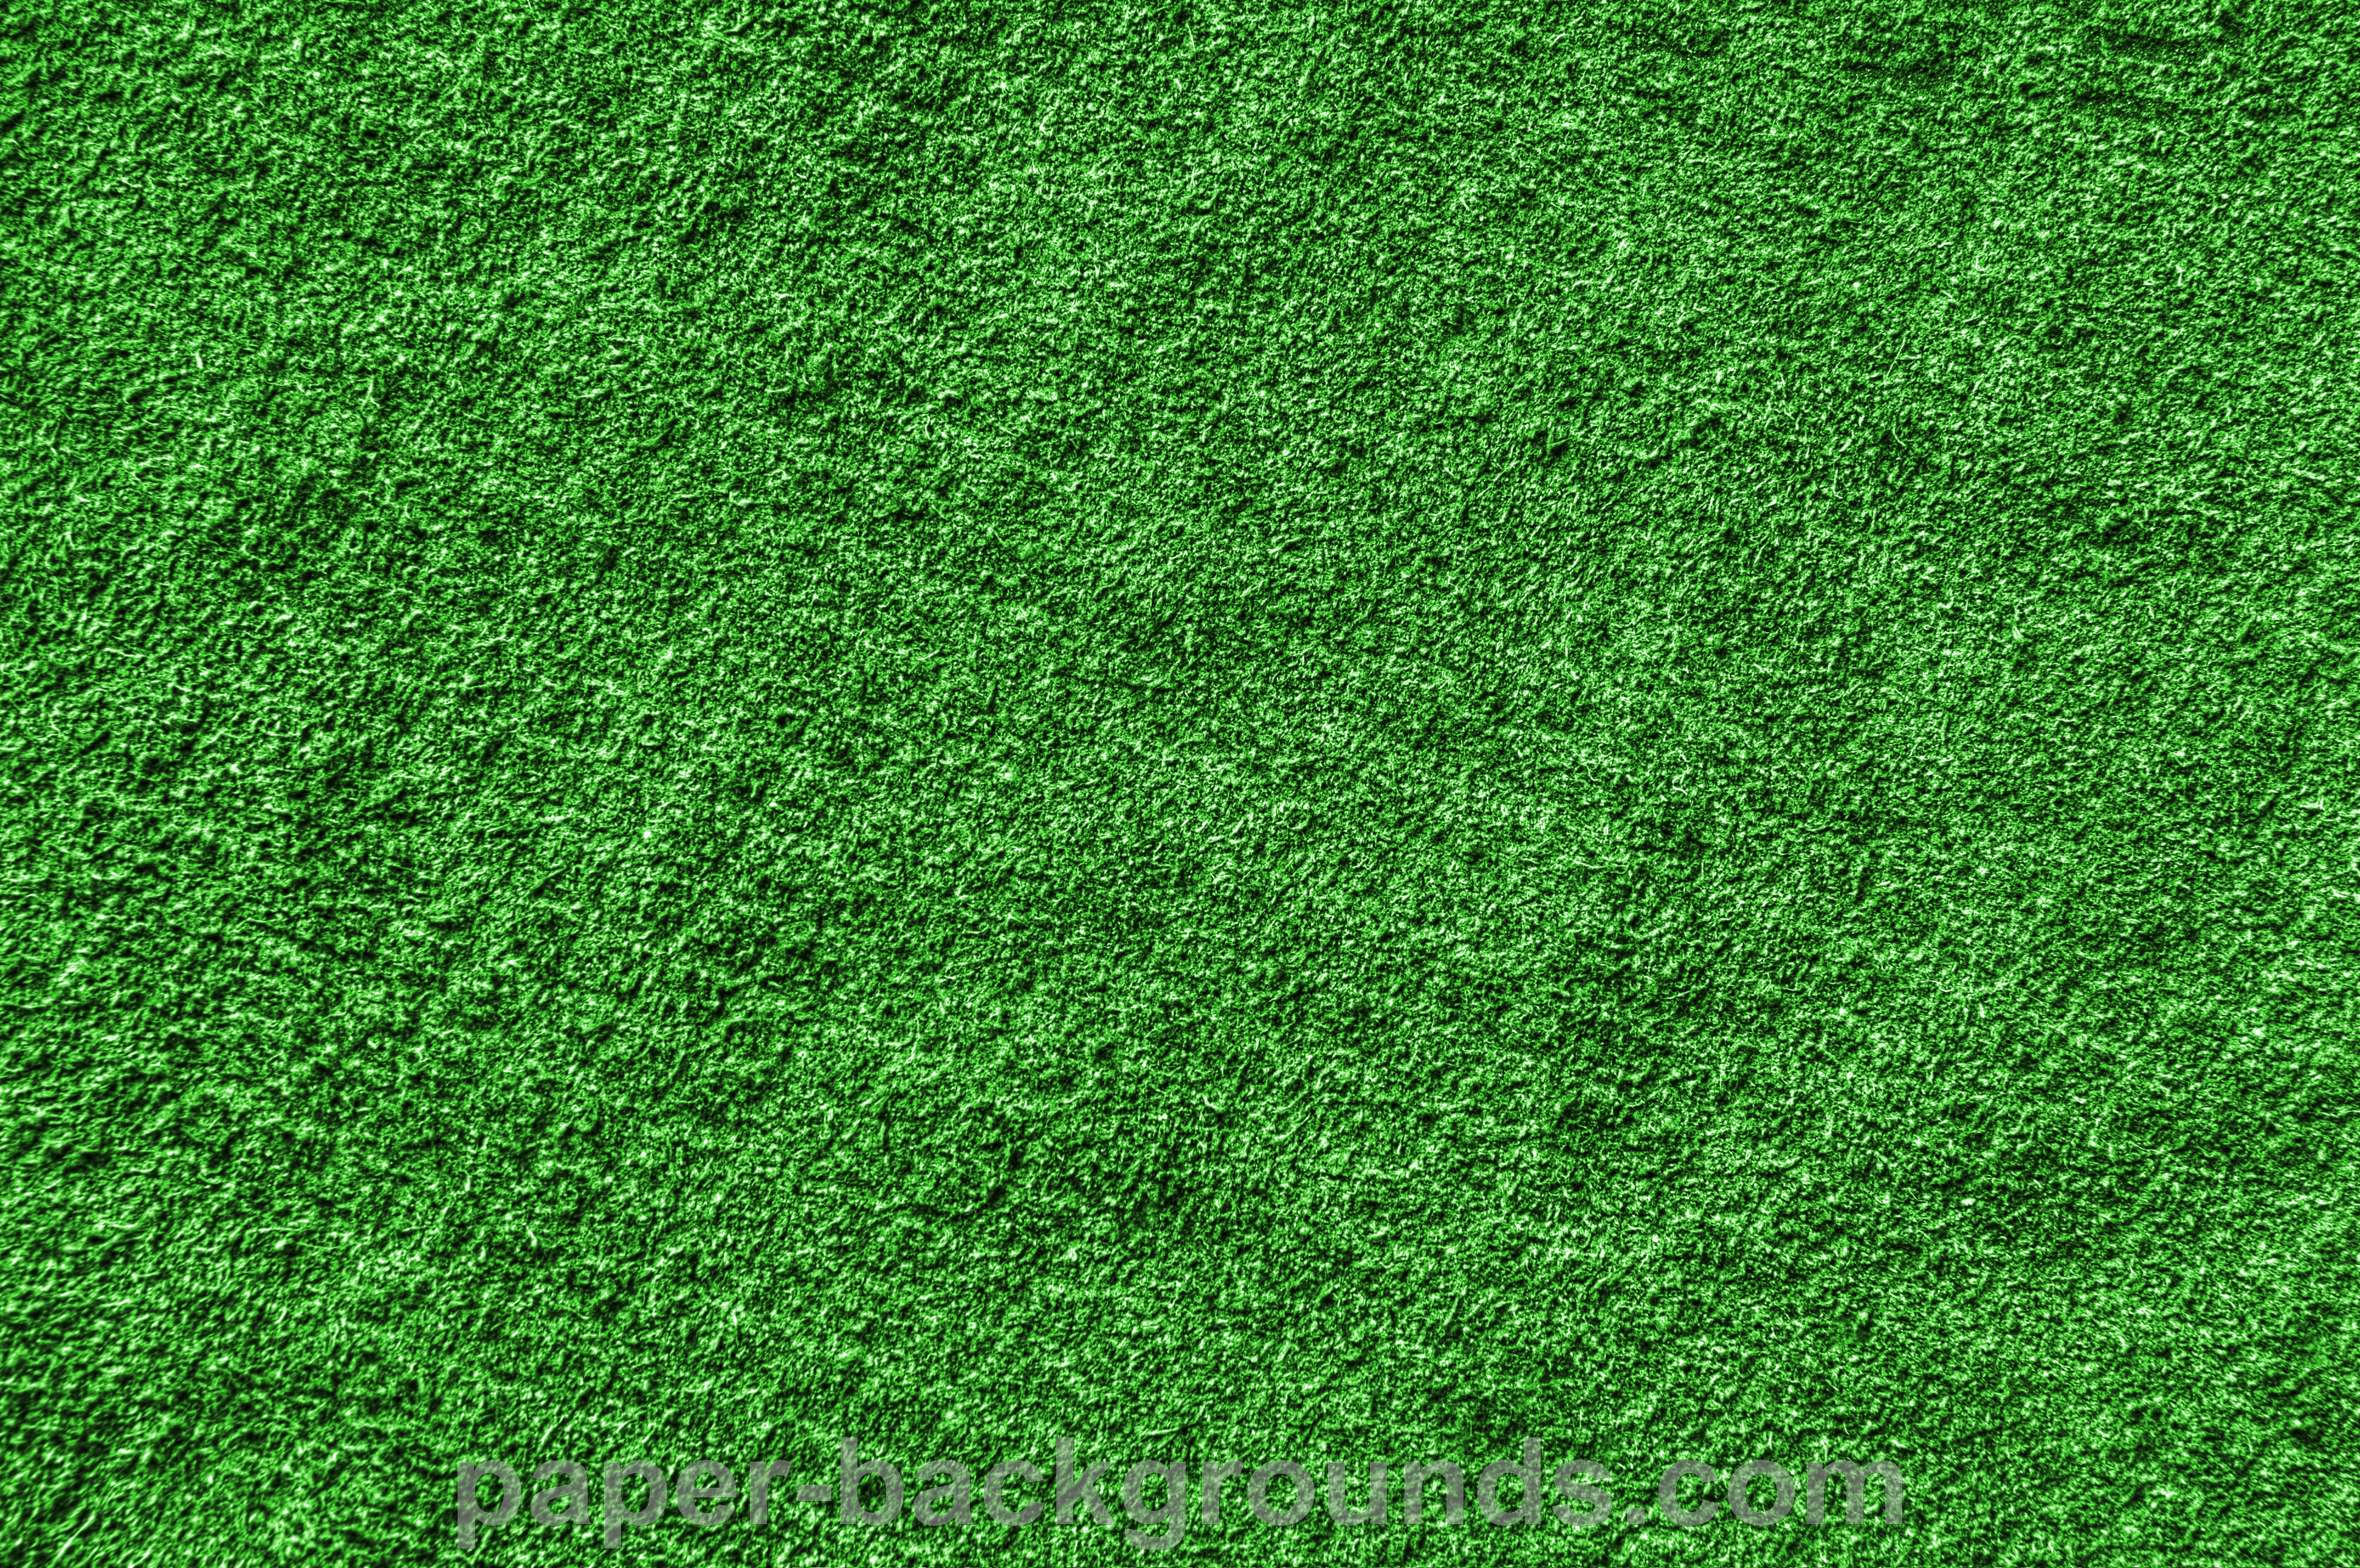 Paper Backgrounds Green Soft Fabric Material Texture